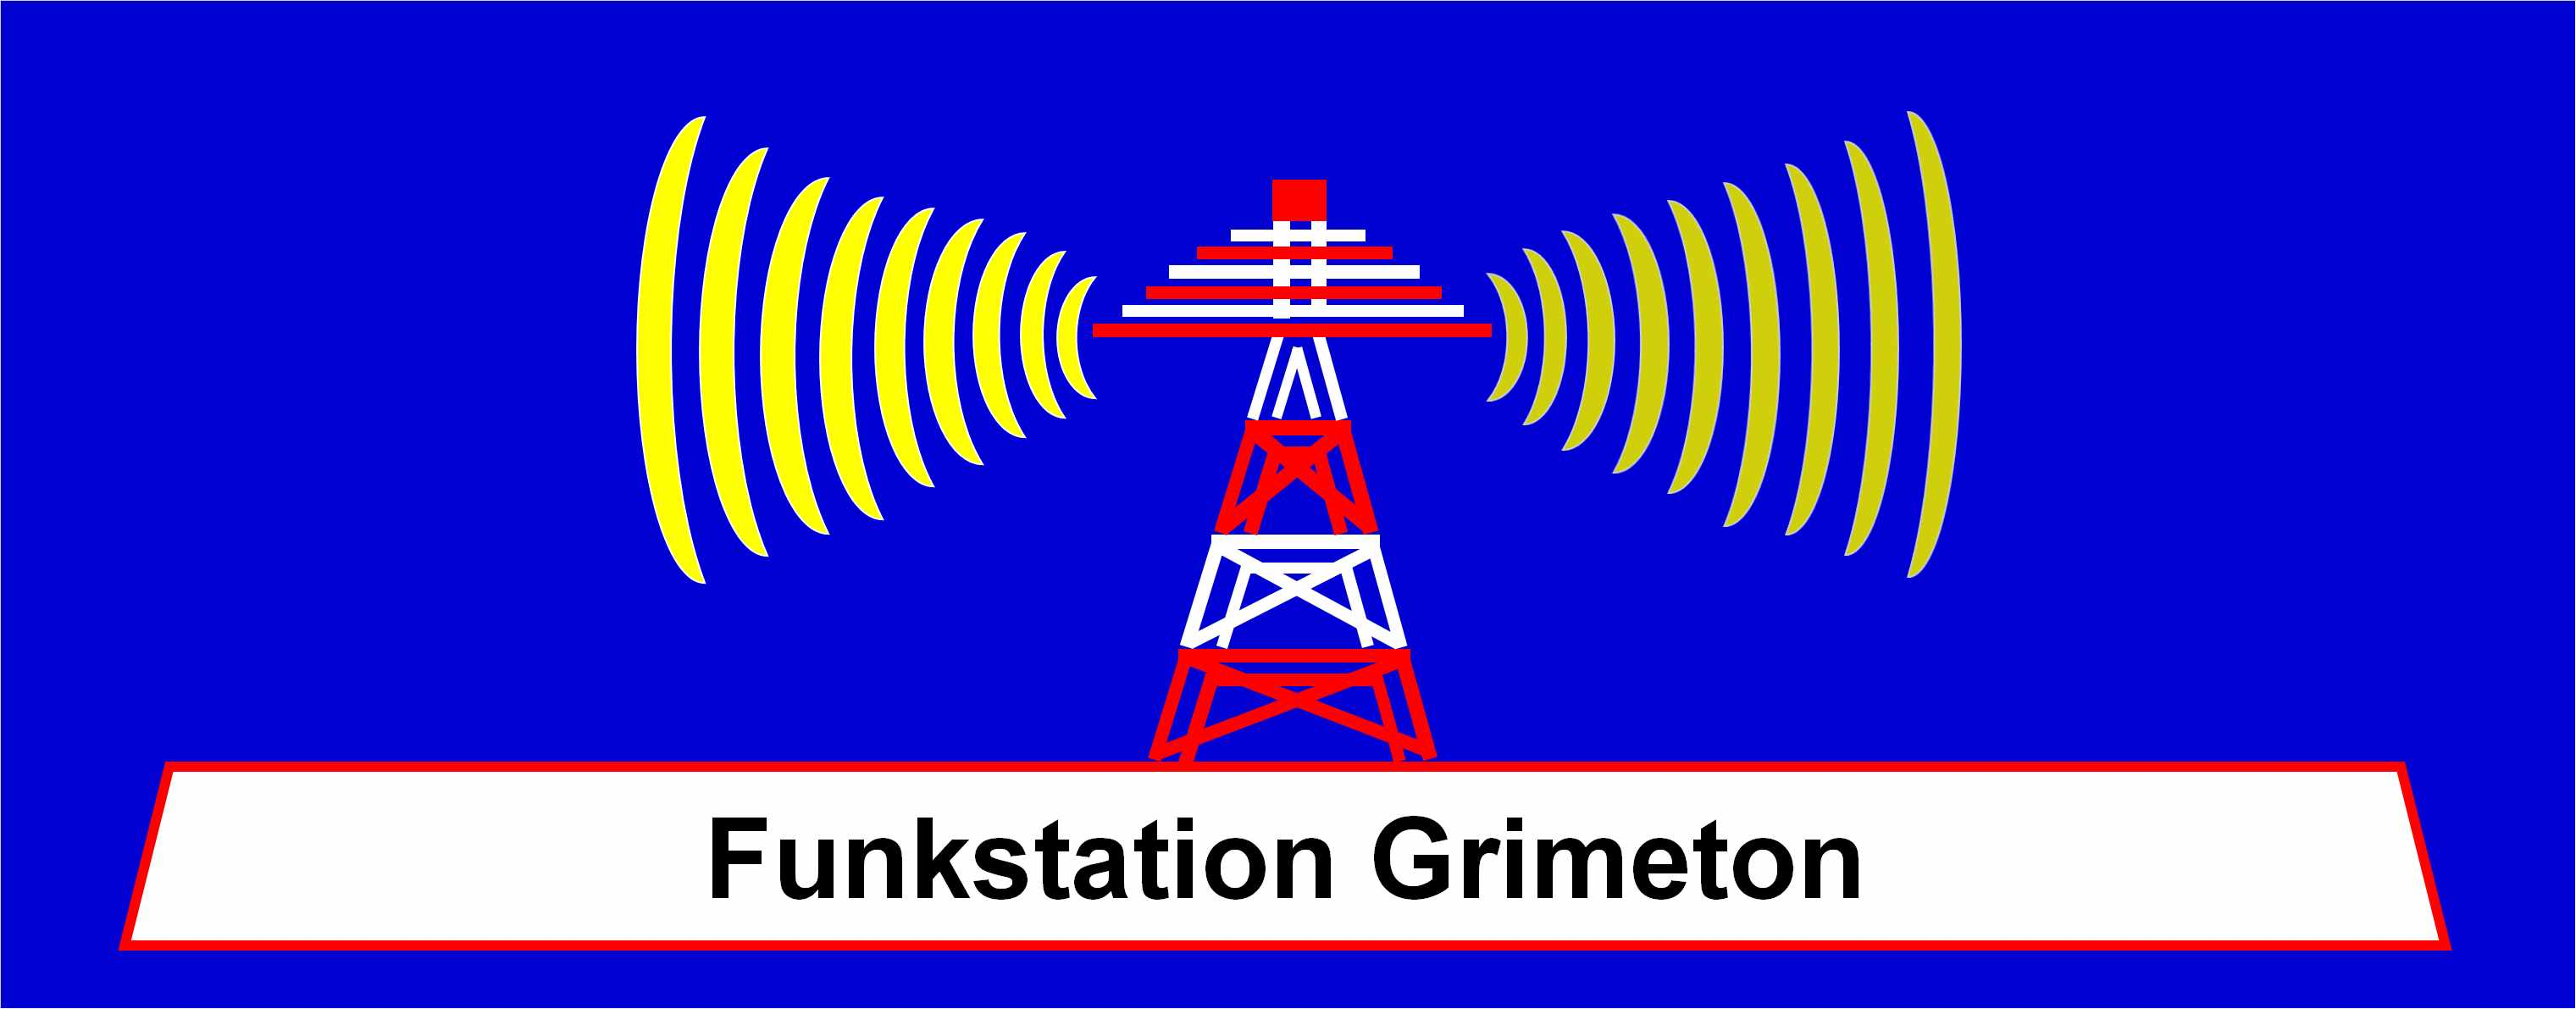 Funkstation Grimeton